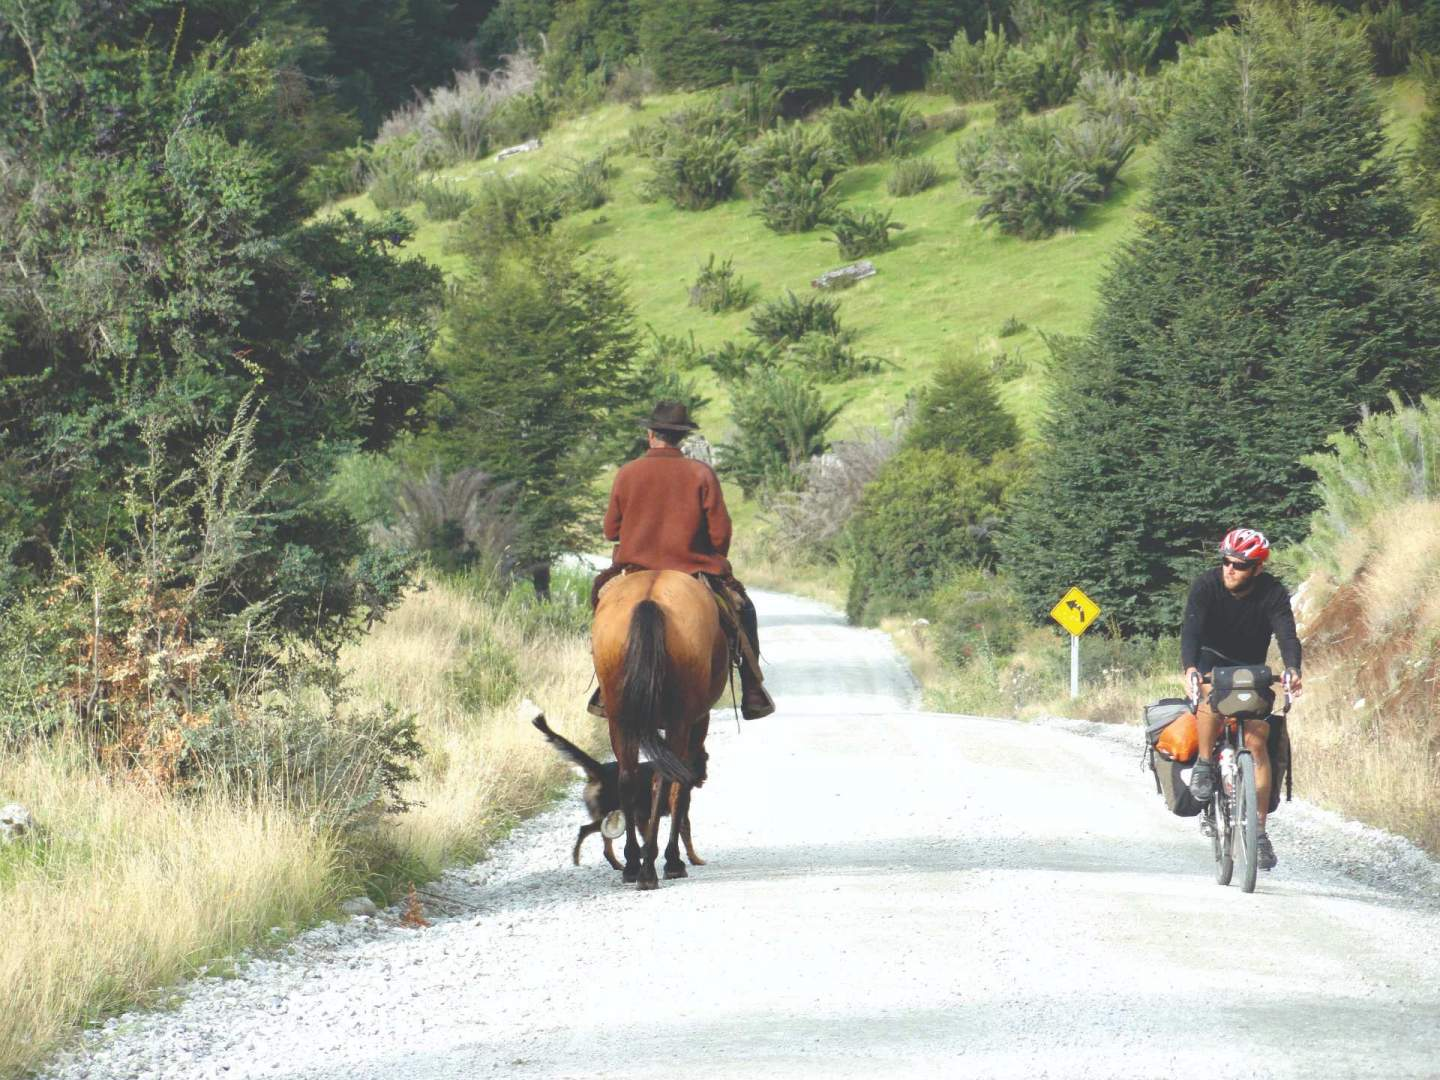 Patagonia, south america, cycling trip Andes